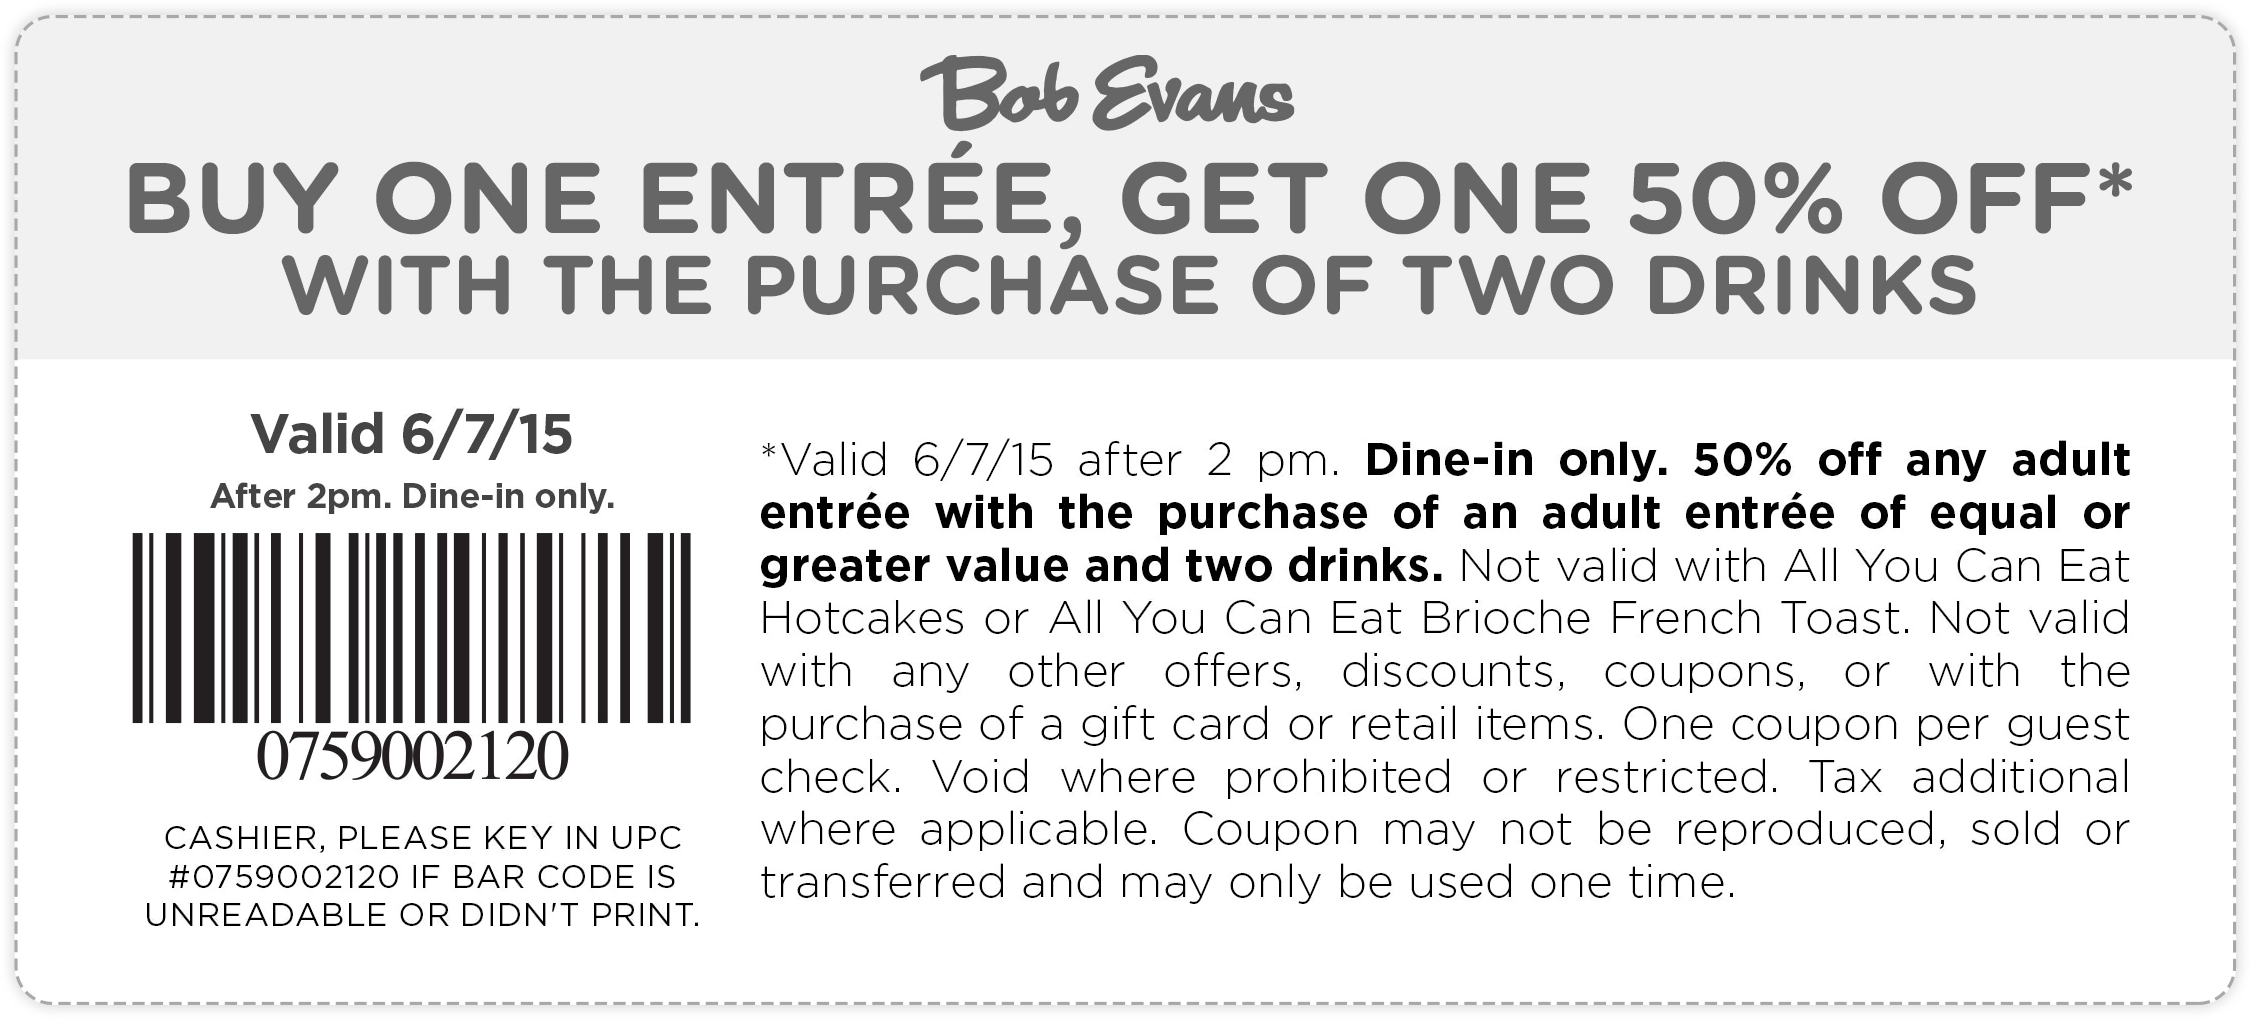 Bob Evans Coupon January 2017 Second entree 50% off today at Bob Evans